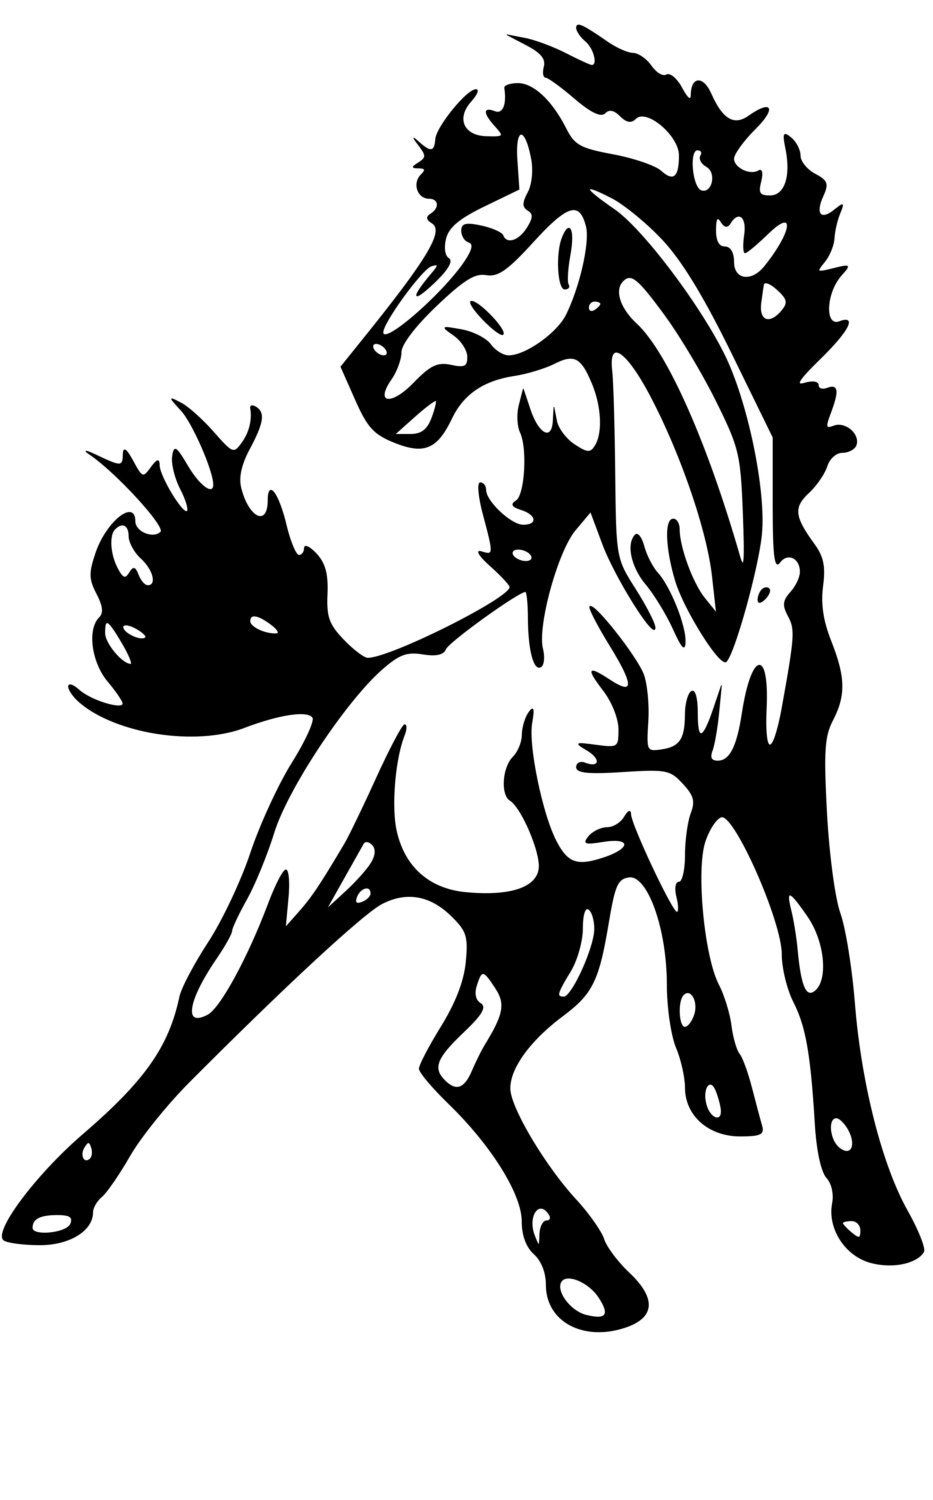 933x1500 Horse Trailer Trailer Decal Horse Mustang Decal,horse Decal